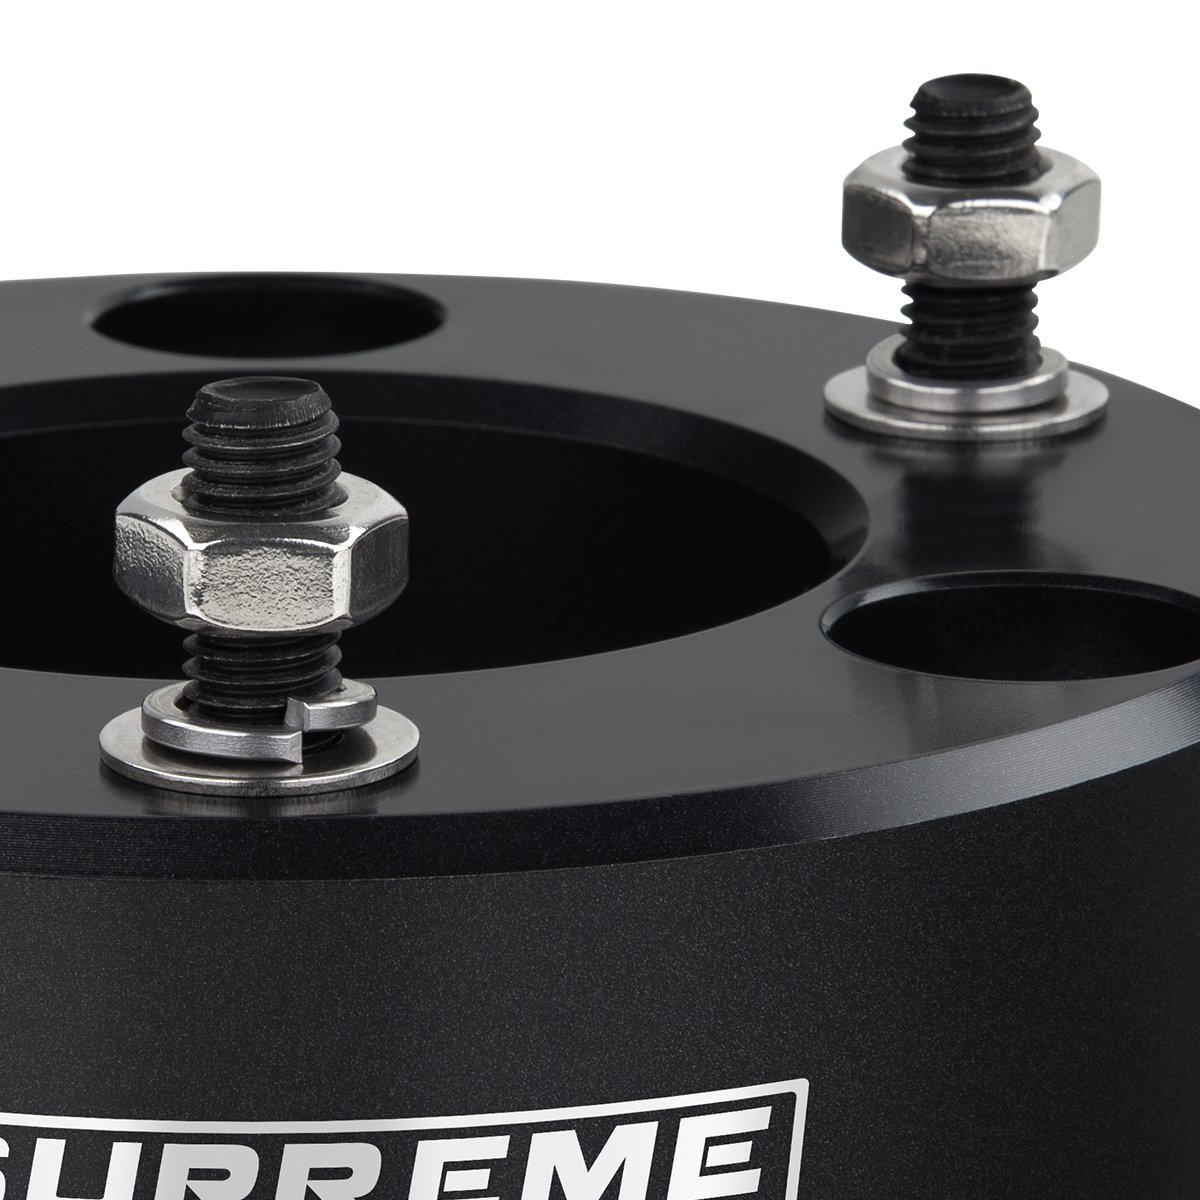 Supreme Suspensions Black Front Lift Kit for Chevy Silverado 1500 Leveling Kit 2.5 Front Lift Aircraft Billet Lift Strut Spacers 2WD 4WD 6-Lug